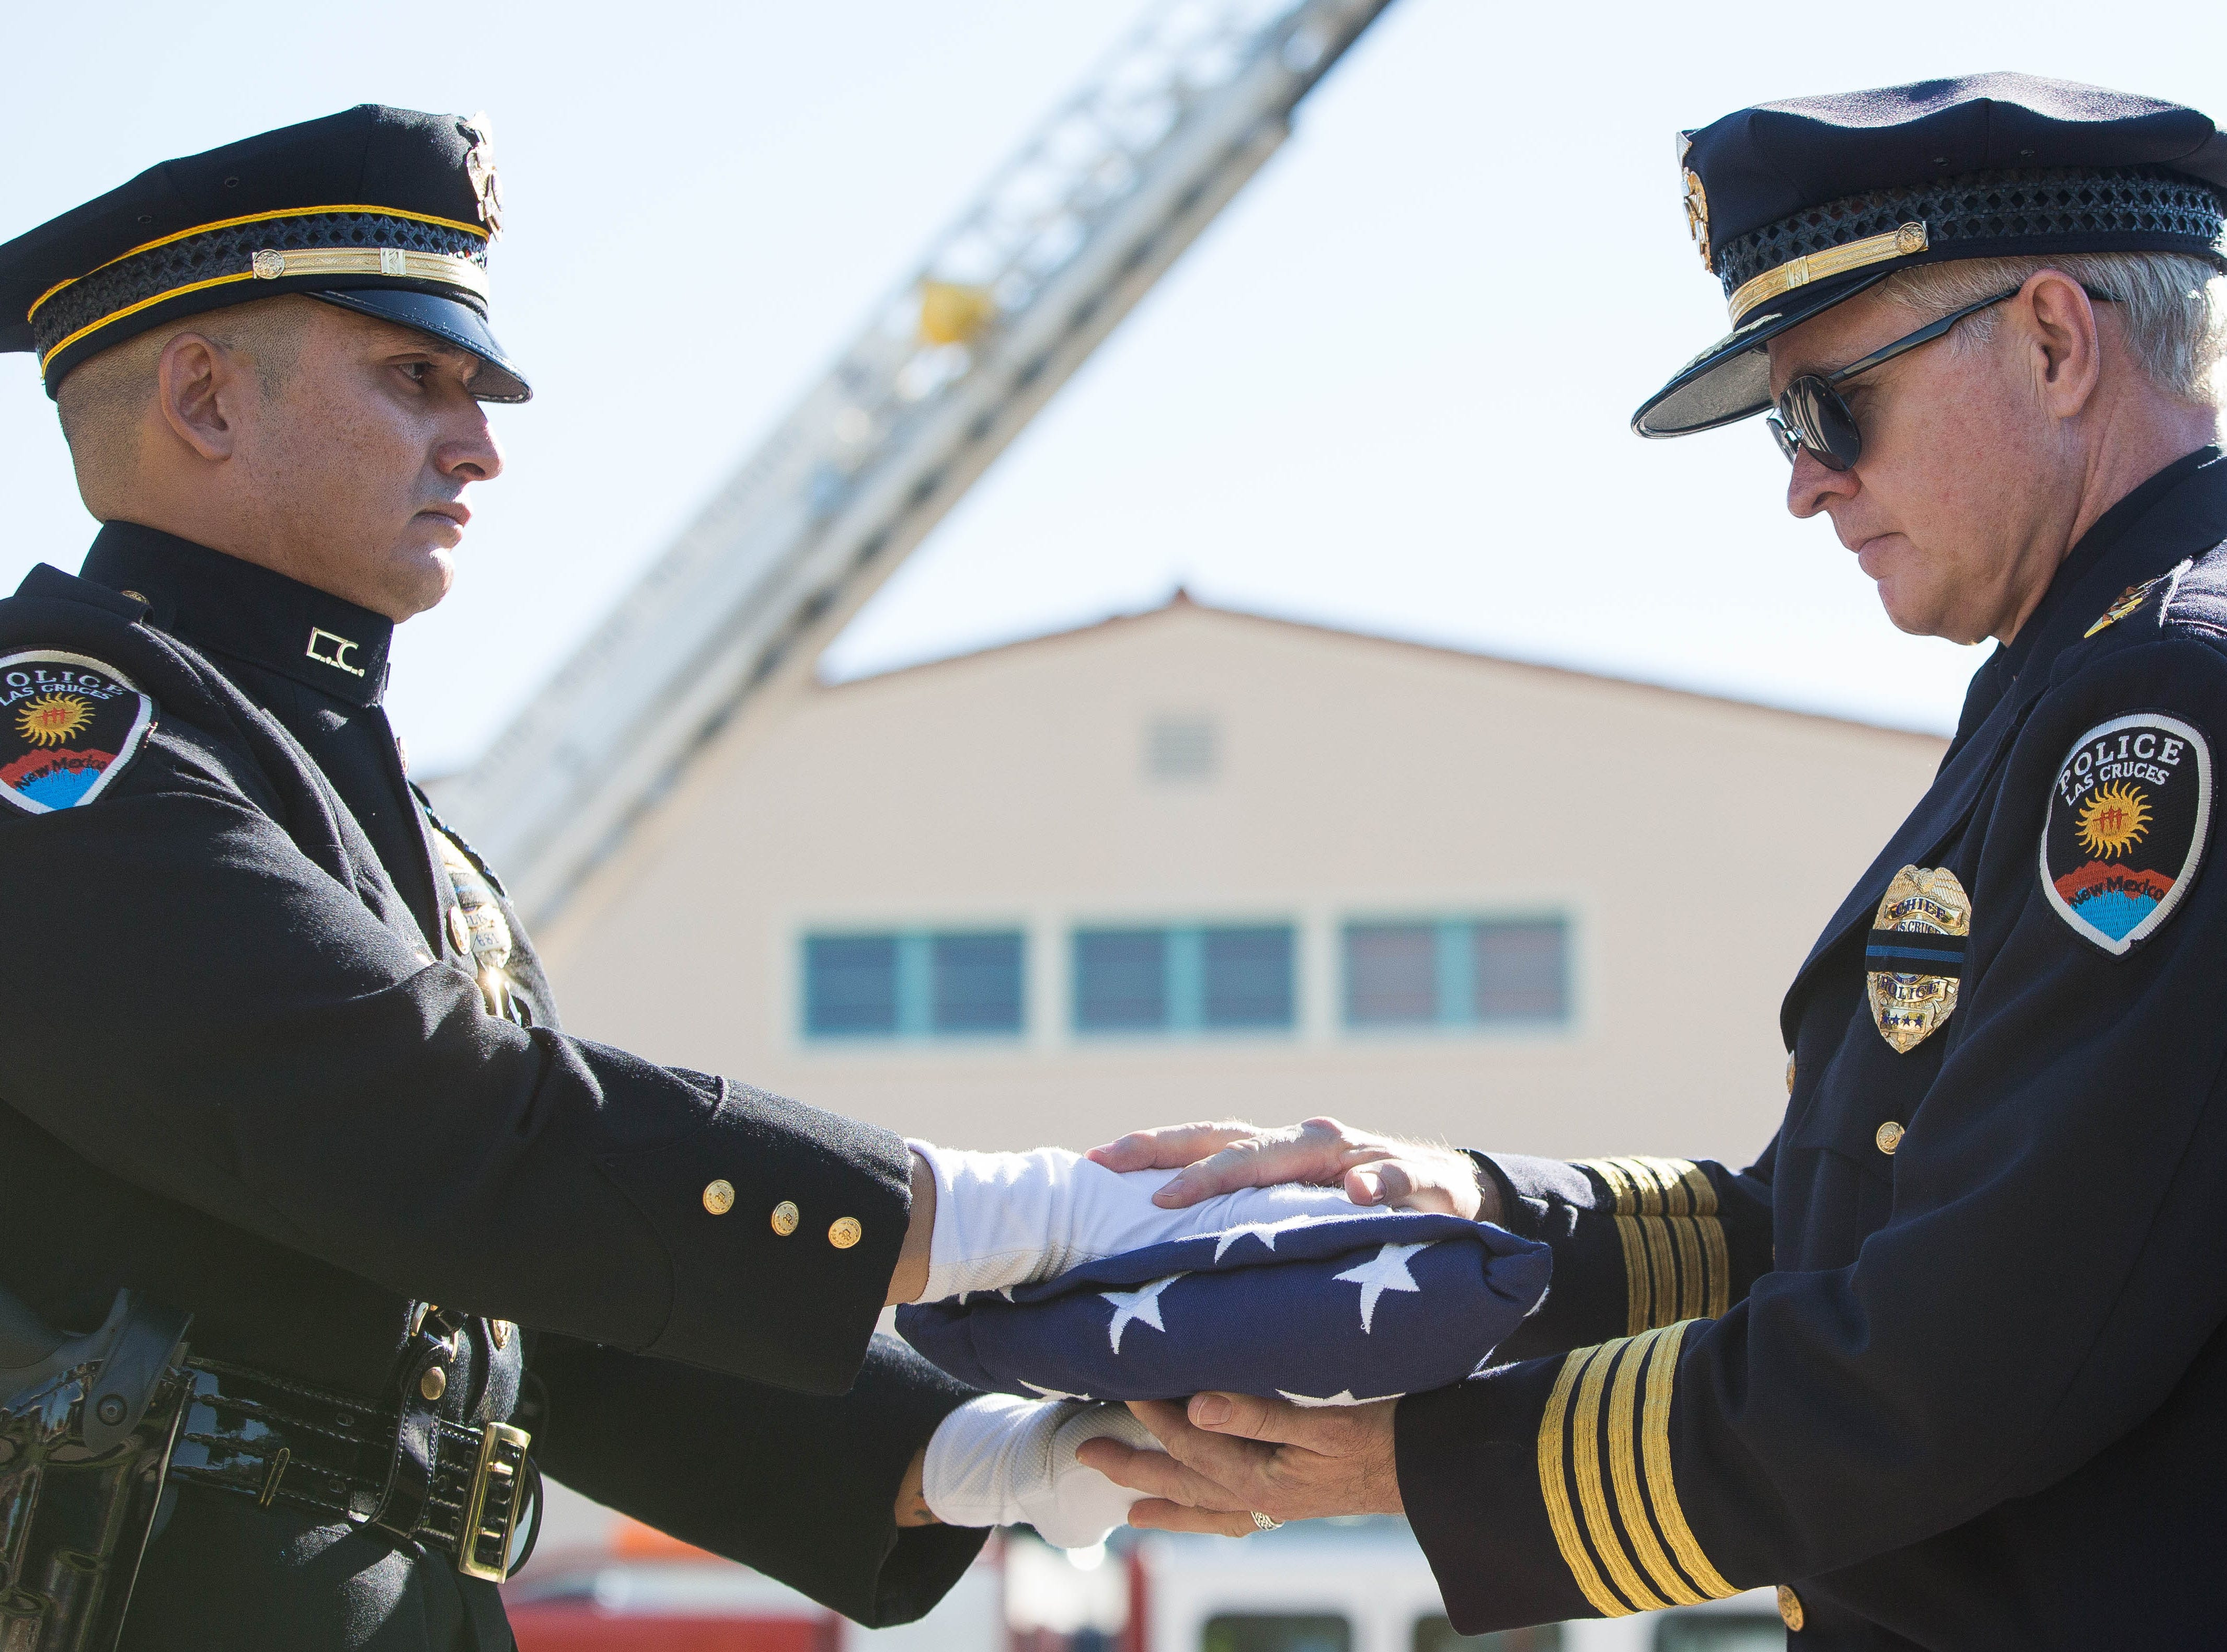 Las Cruces Police Officer Daniel Lopez, left, hands a folded American flag to Police Chief Patrick Gallagher at the closing of the Patriot Day ceremony at New Mexico State University, Tuesday Sept. 11, 2018.